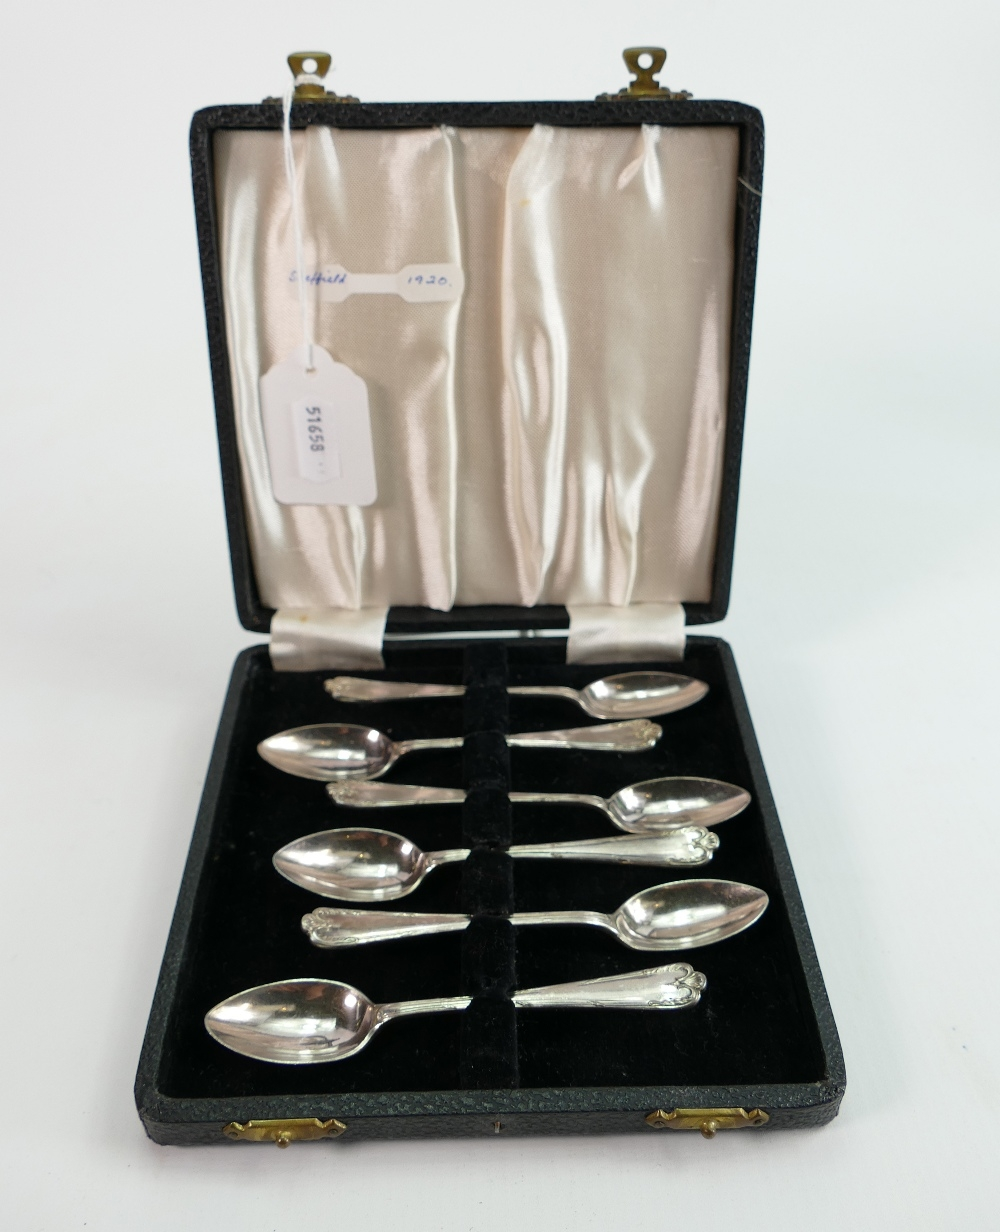 Cased set of 6 silver coffee spoons: Weight of spoons 85.3g. Hallmarks for Sheffield 1945.